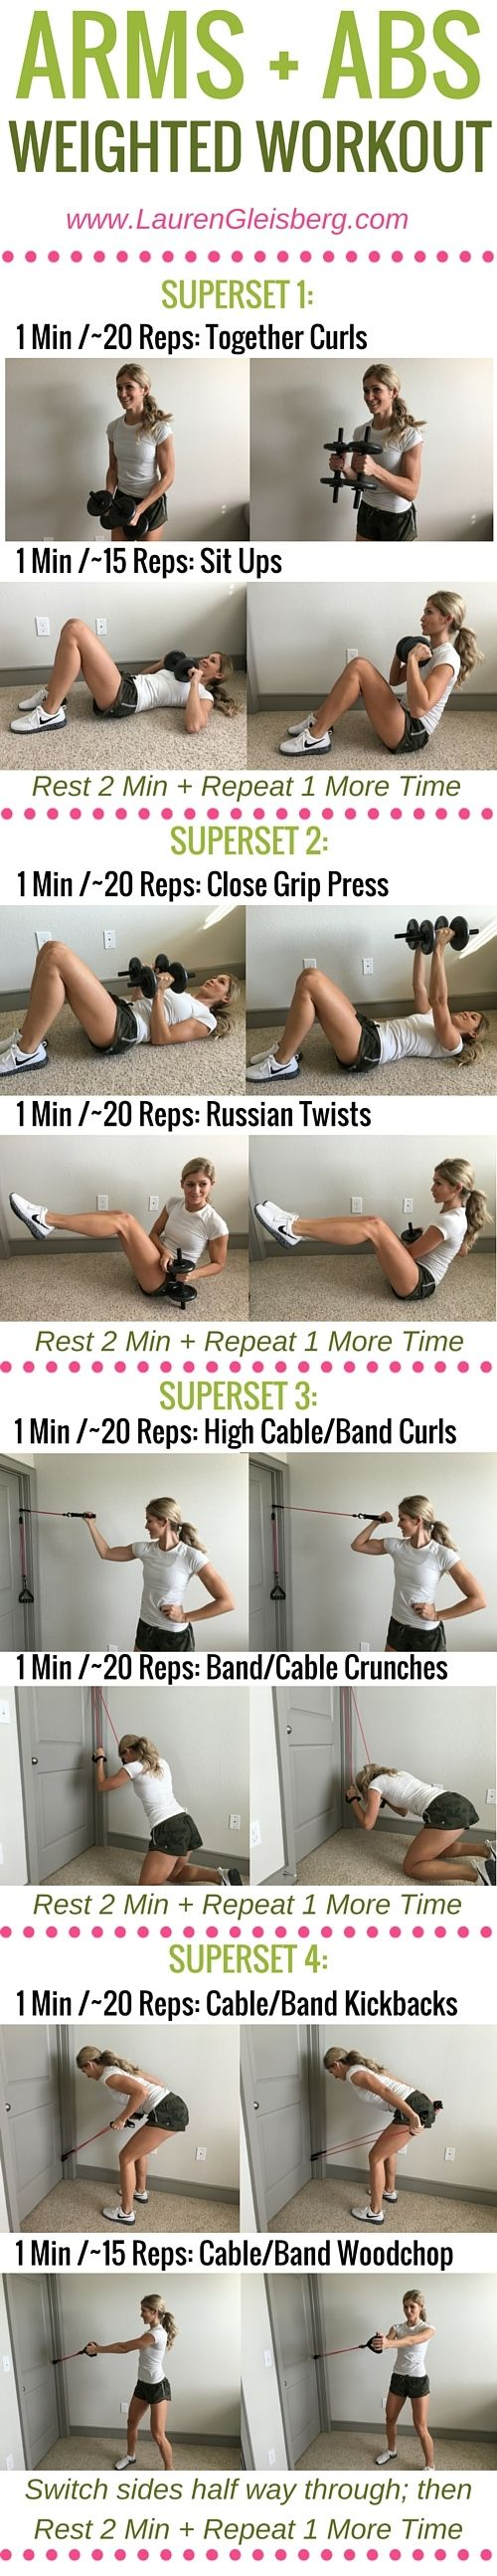 Week 3 Day 2 | Home & Gym Version | Arms + Abs Weighted Workout | #LGFitmas Lauren Gleisberg